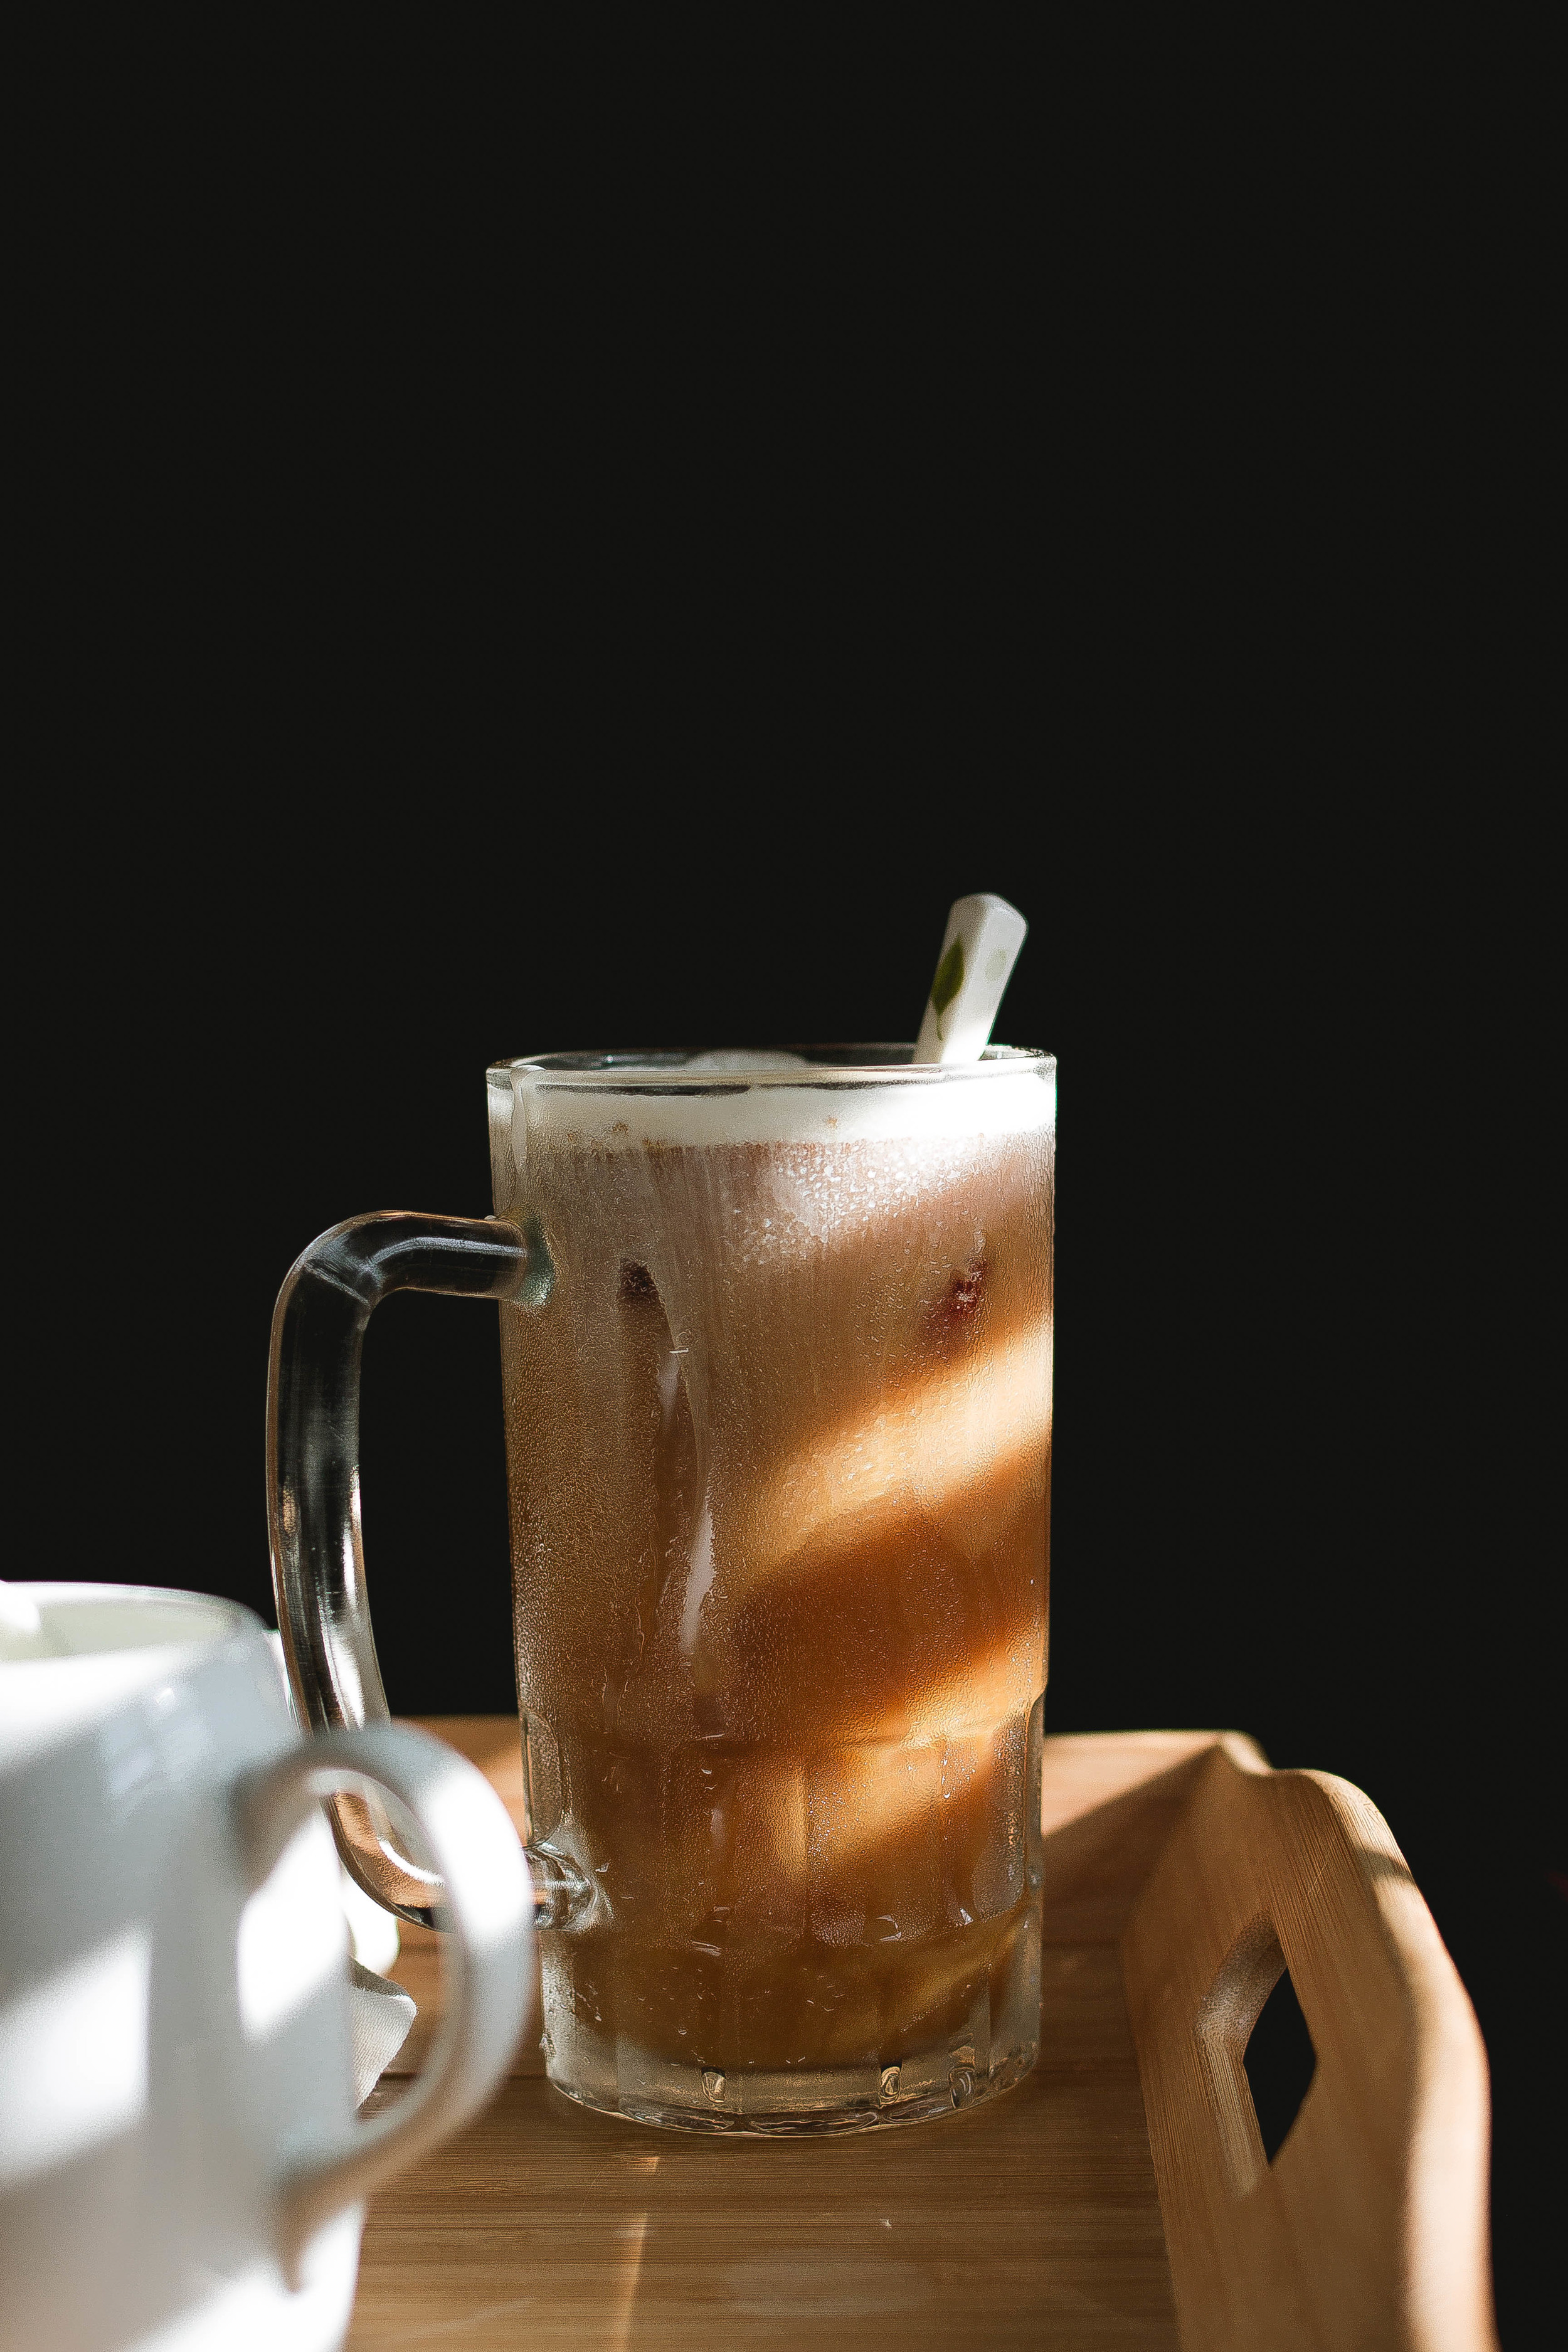 Recipe for Sea salt cream iced coffee like 85 degrees-Taiwanese style coffee | by fit for the soul